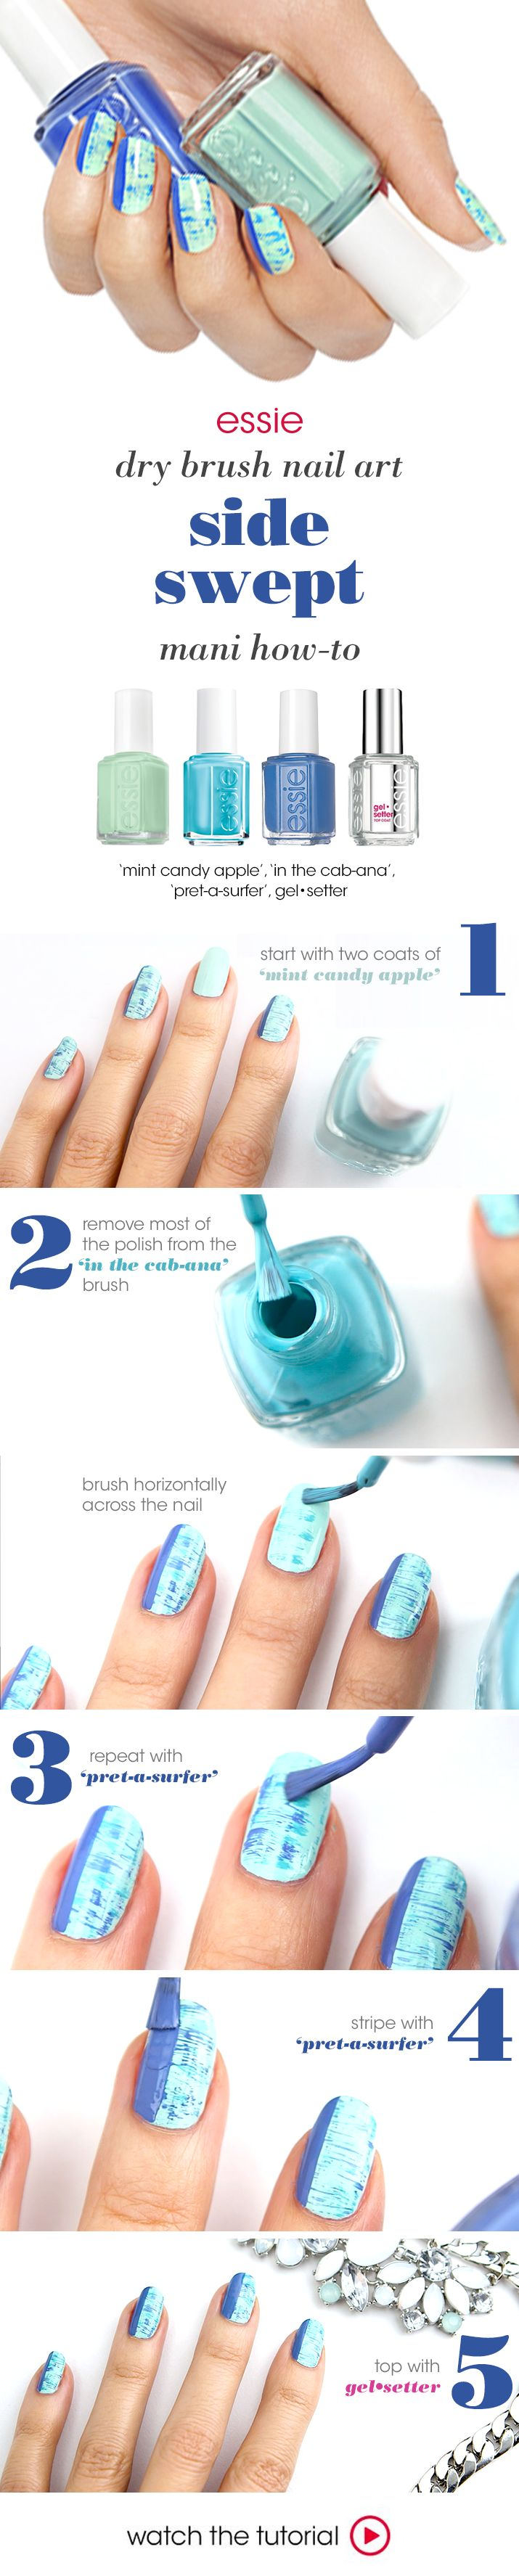 oceanic shades of blue and mint make for nail art that's one part calm seas, one part stormy water